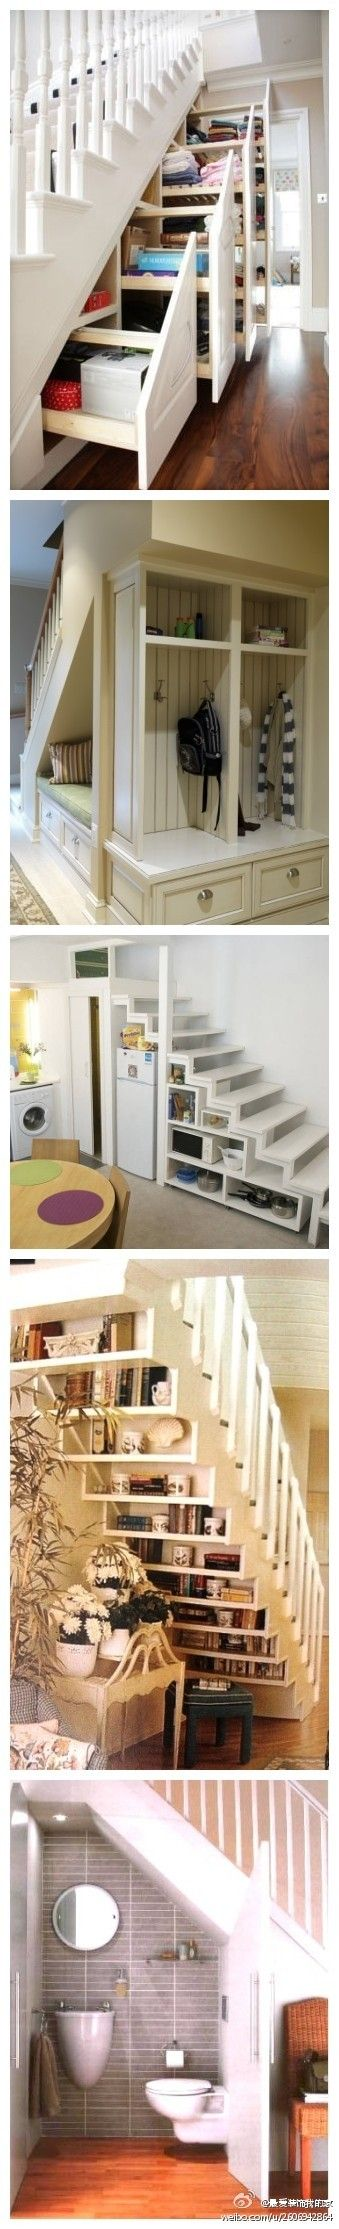 cool ideas for under the stairs